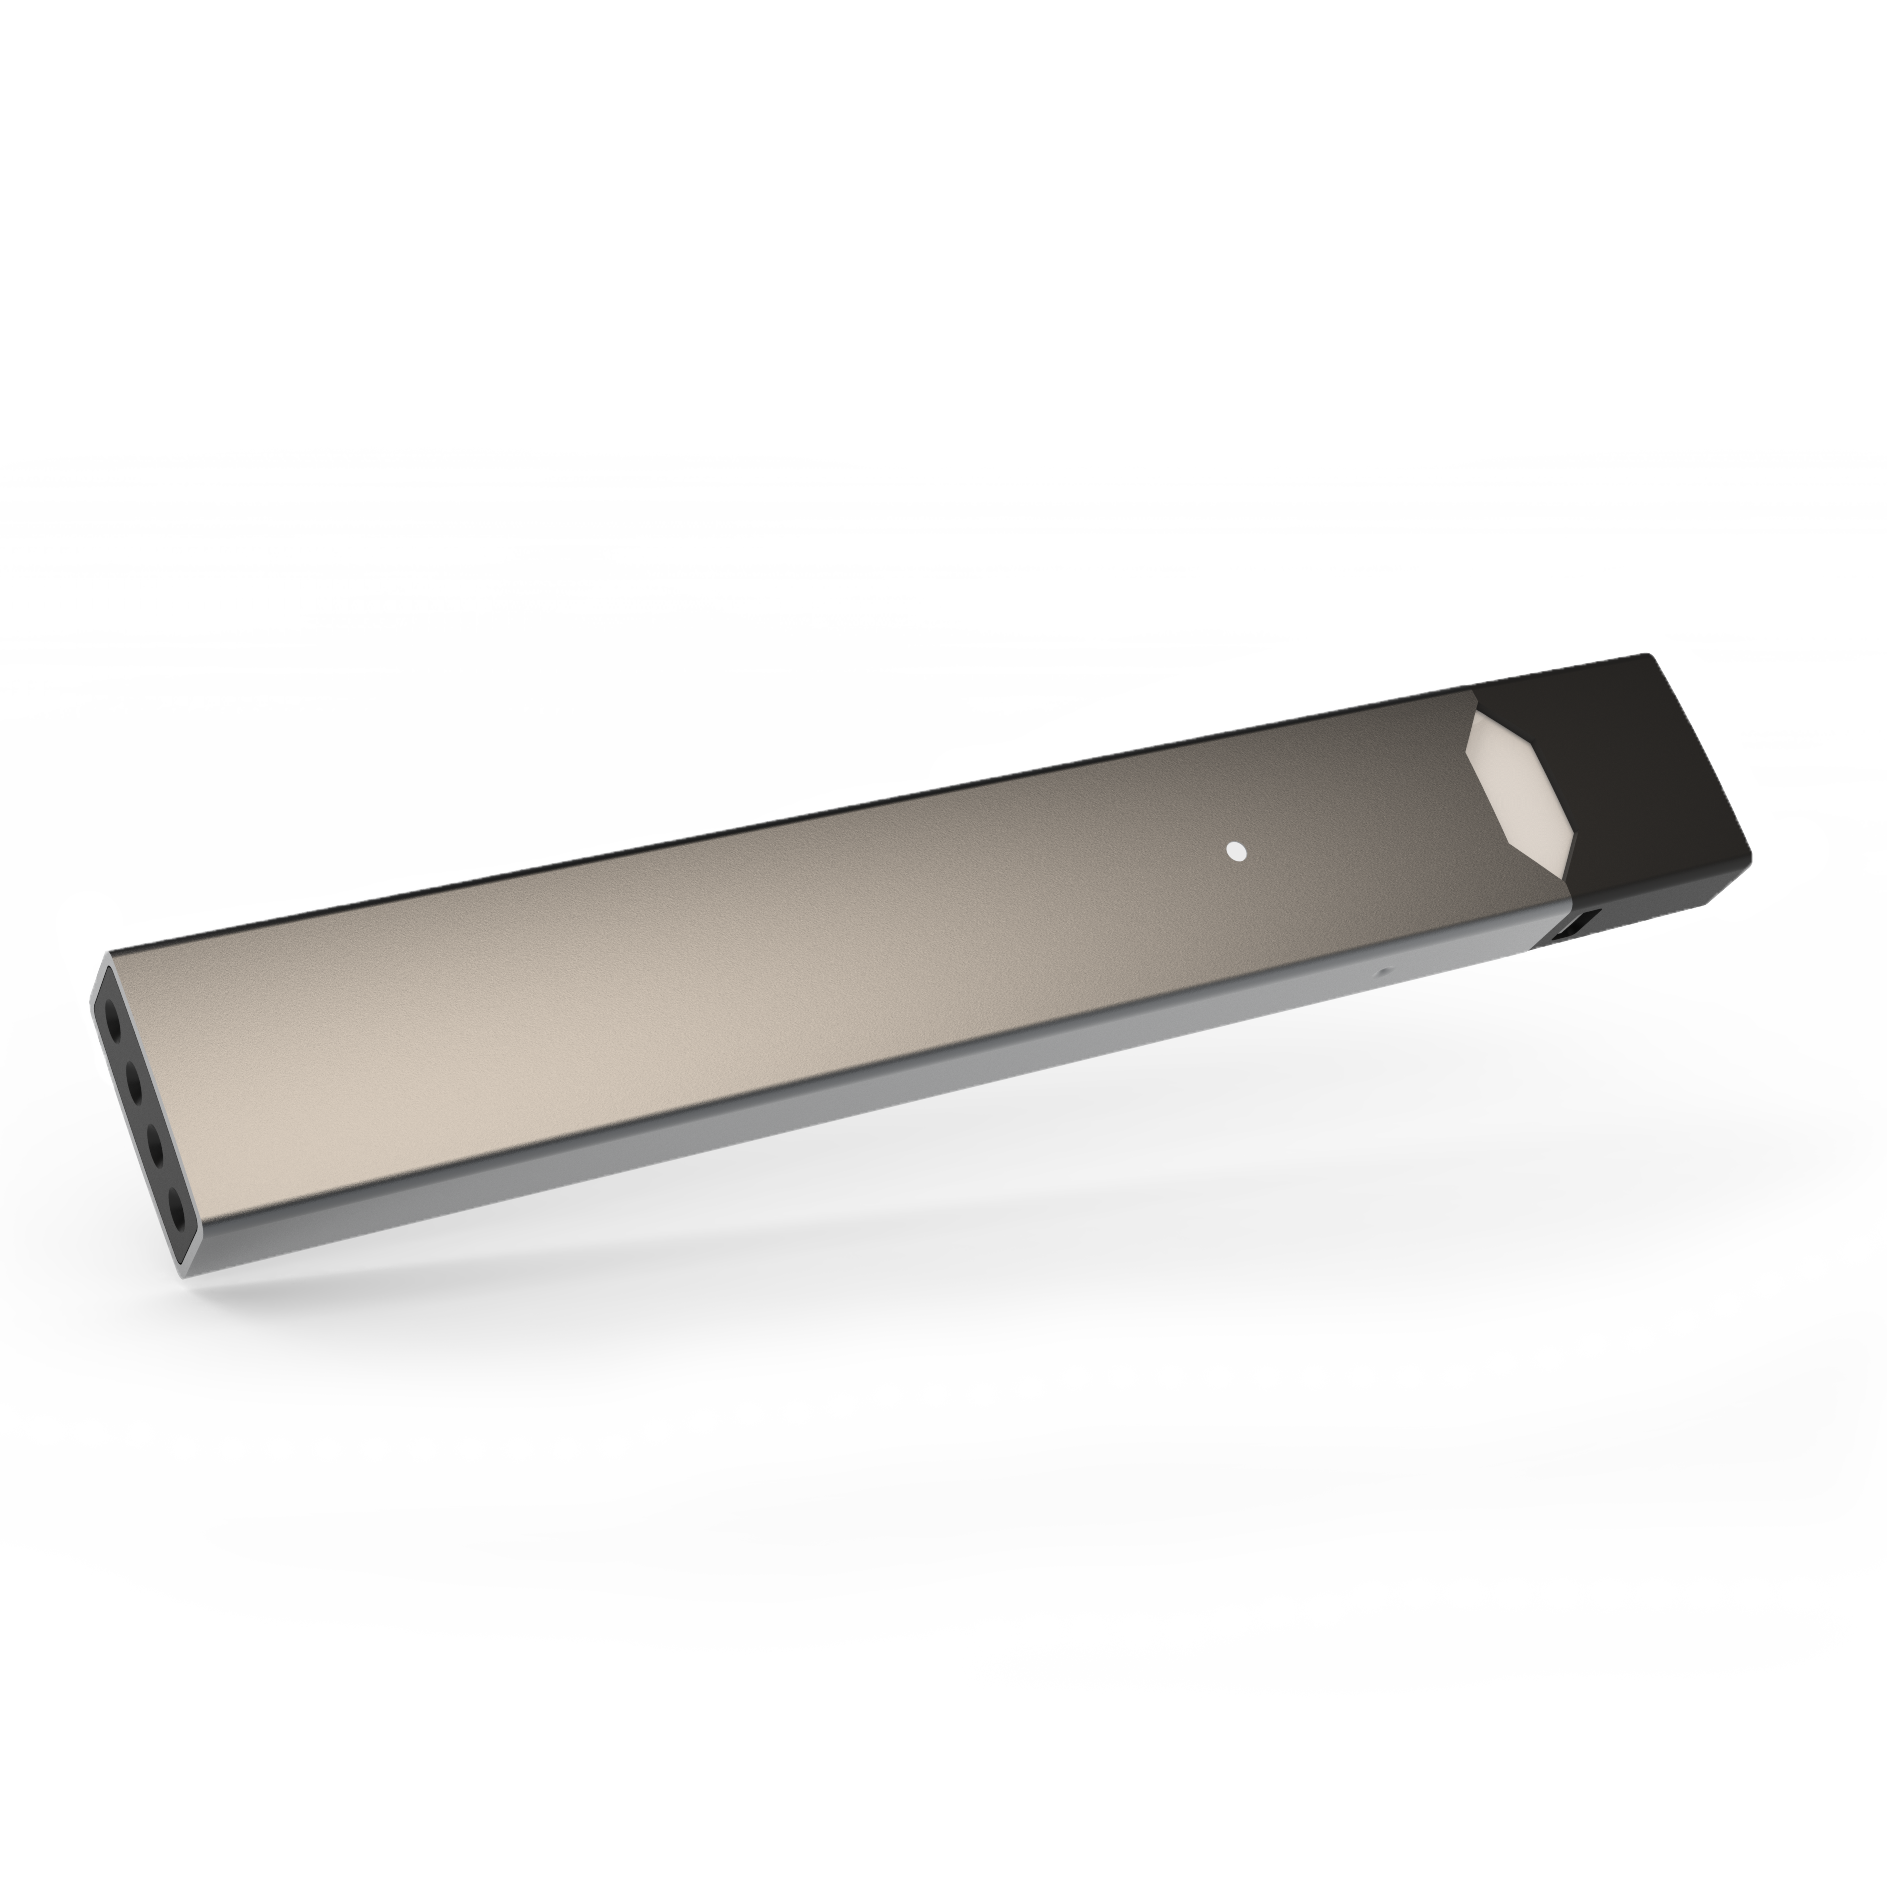 Juul transparent triangle. Vaporizer vapors and things